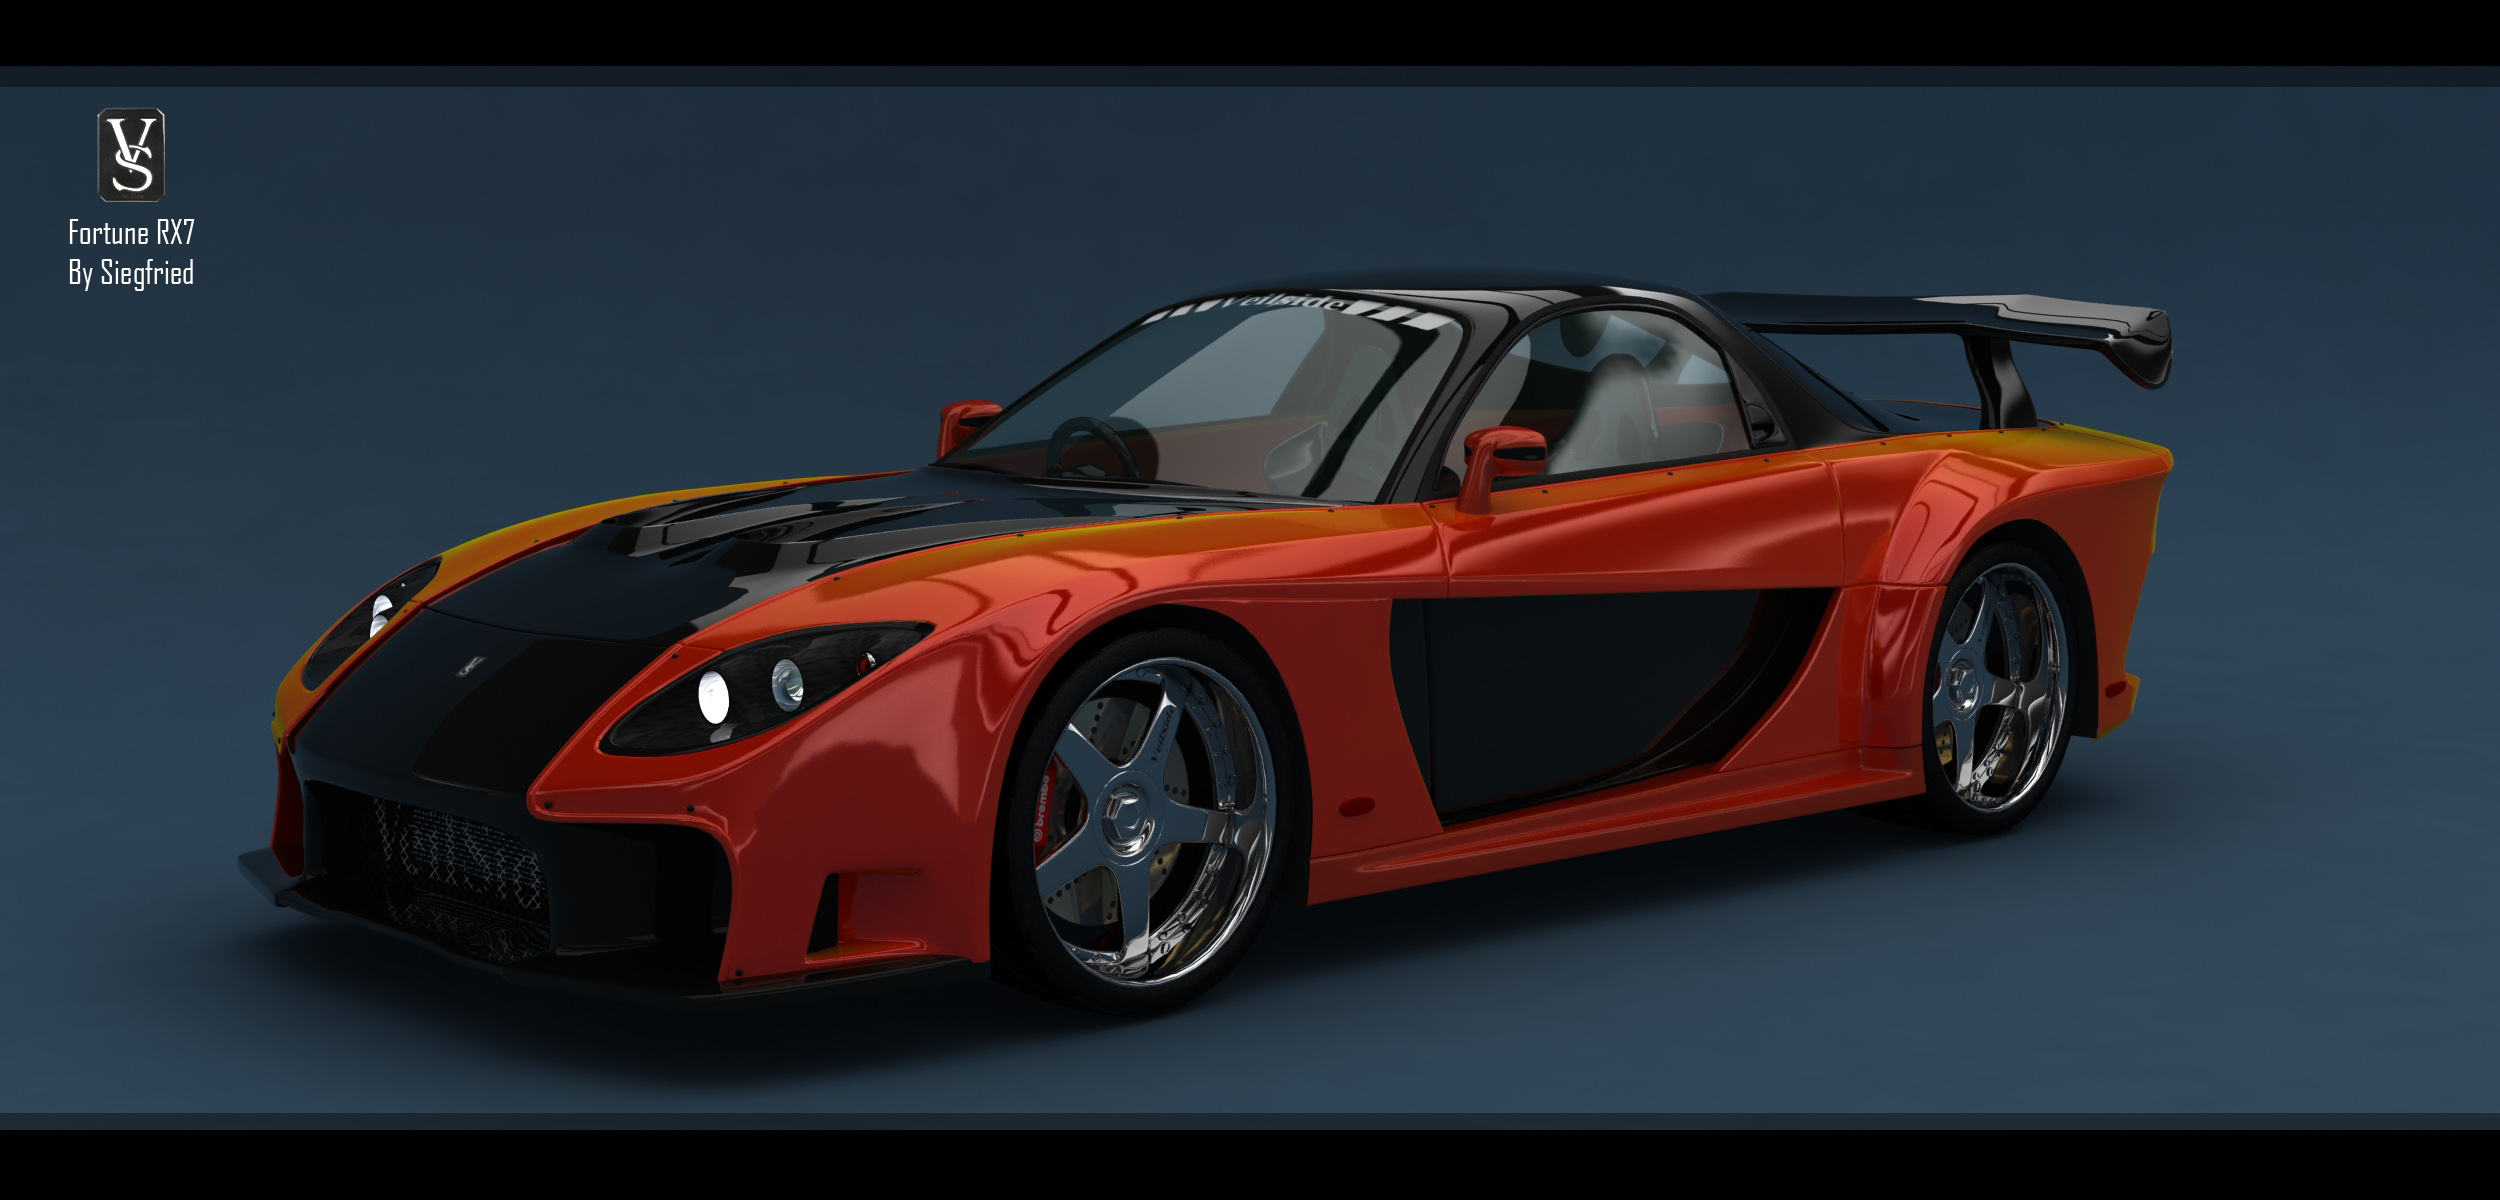 veilside fortune rx7-pic1siegfried-ukr on deviantart